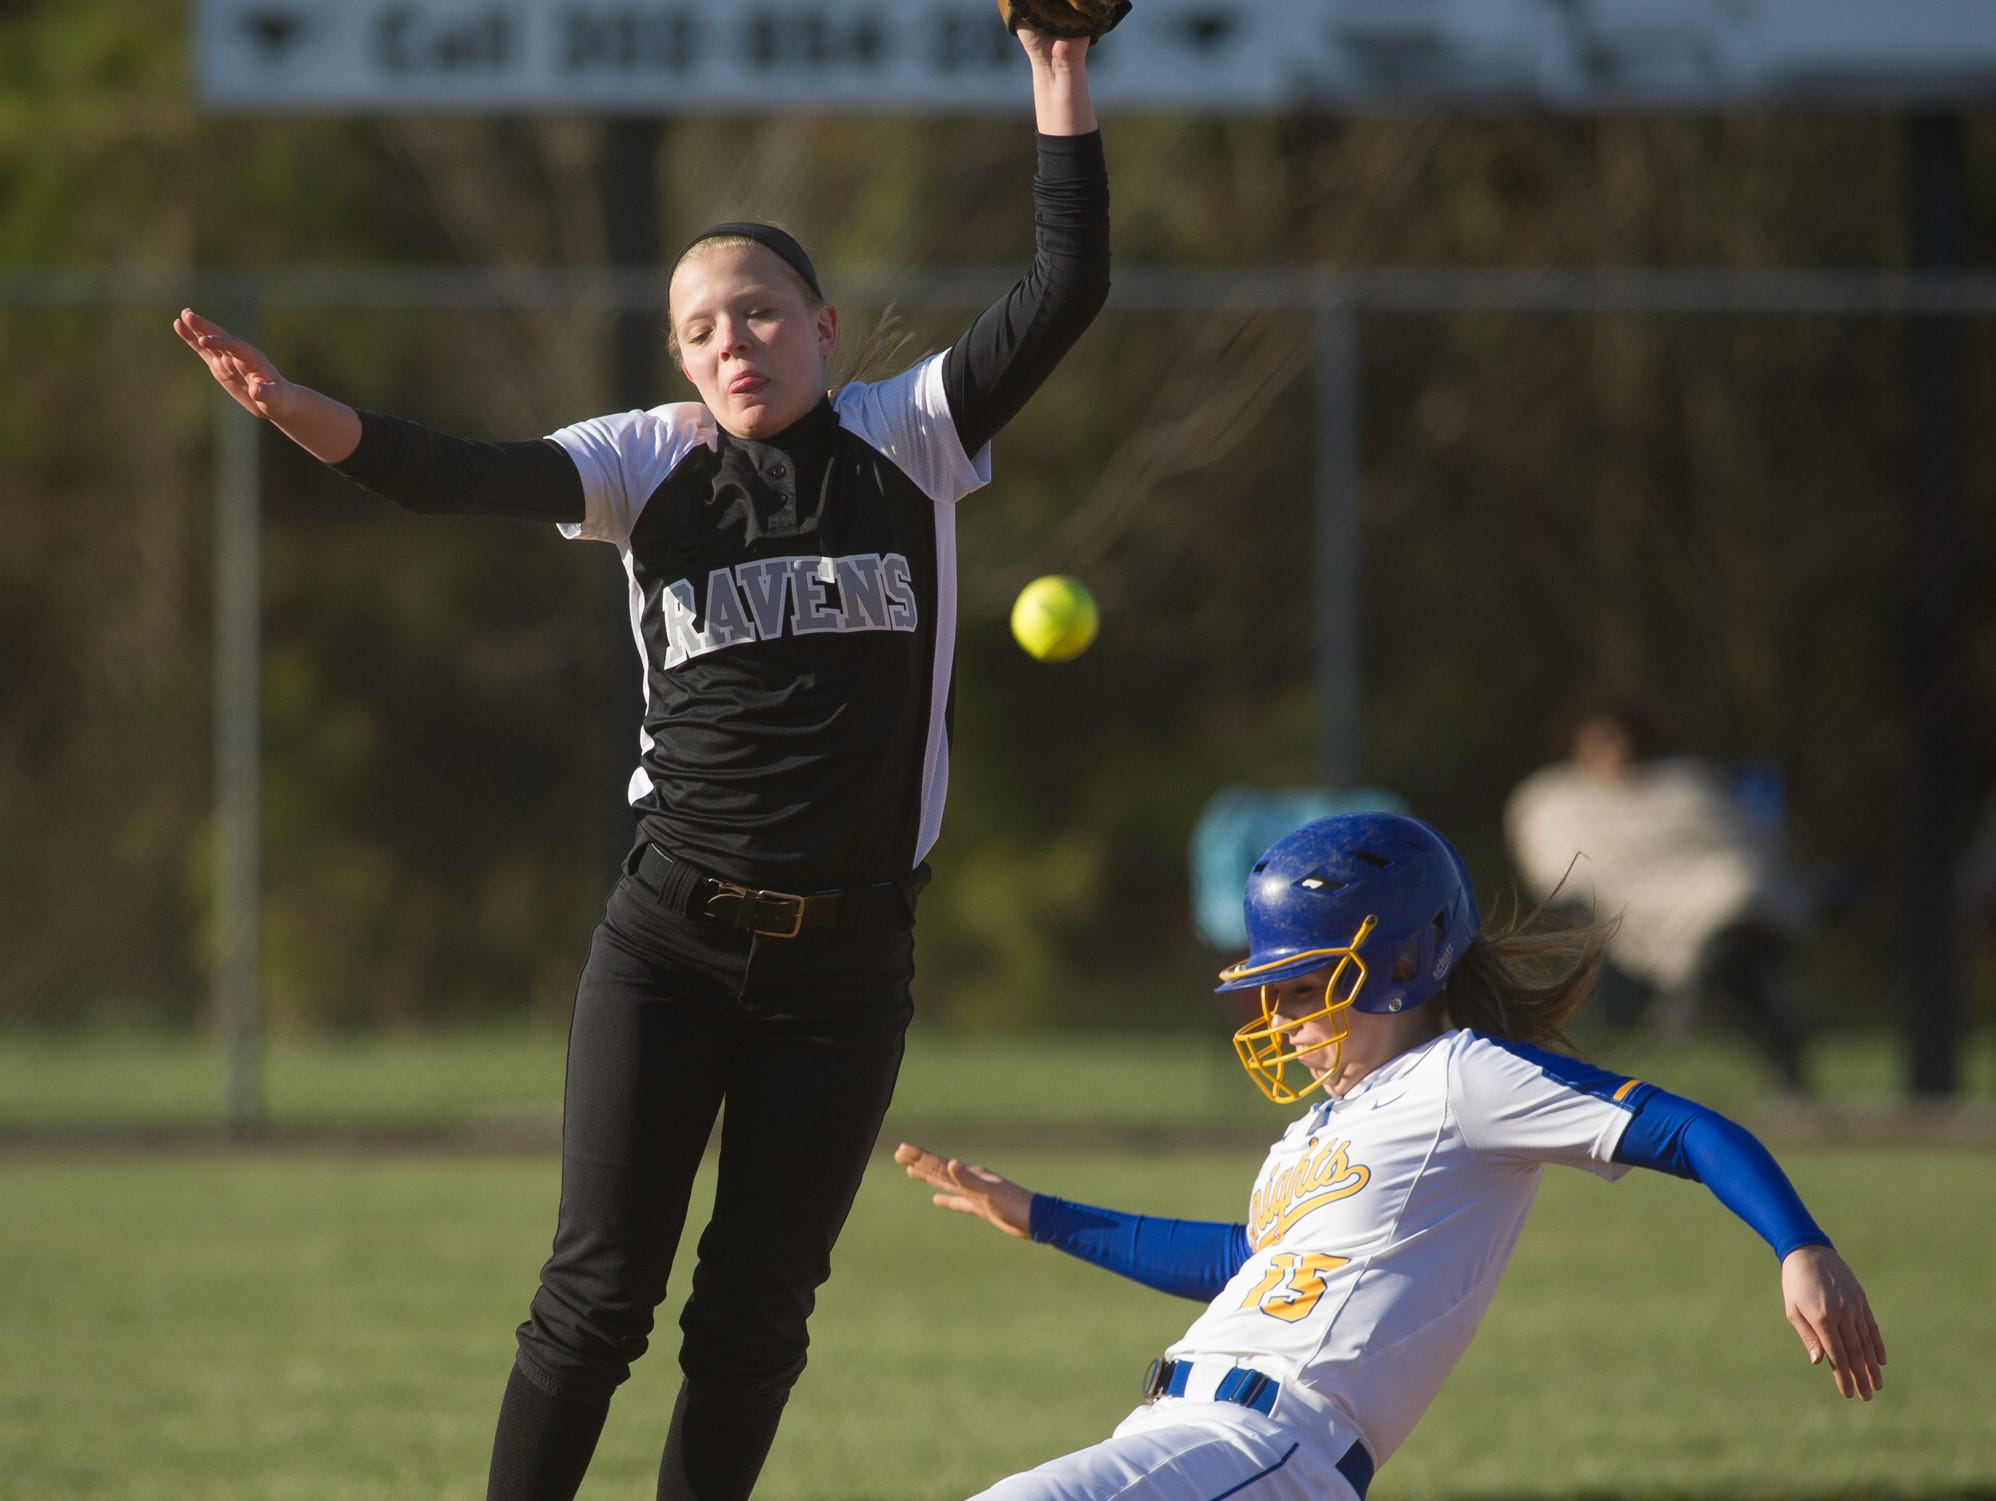 Sussex Tech's Nicole Hovatter (2), left misses a throw to third base letting Sussex Central's Brooke Stoeckel (15) slide in safe.